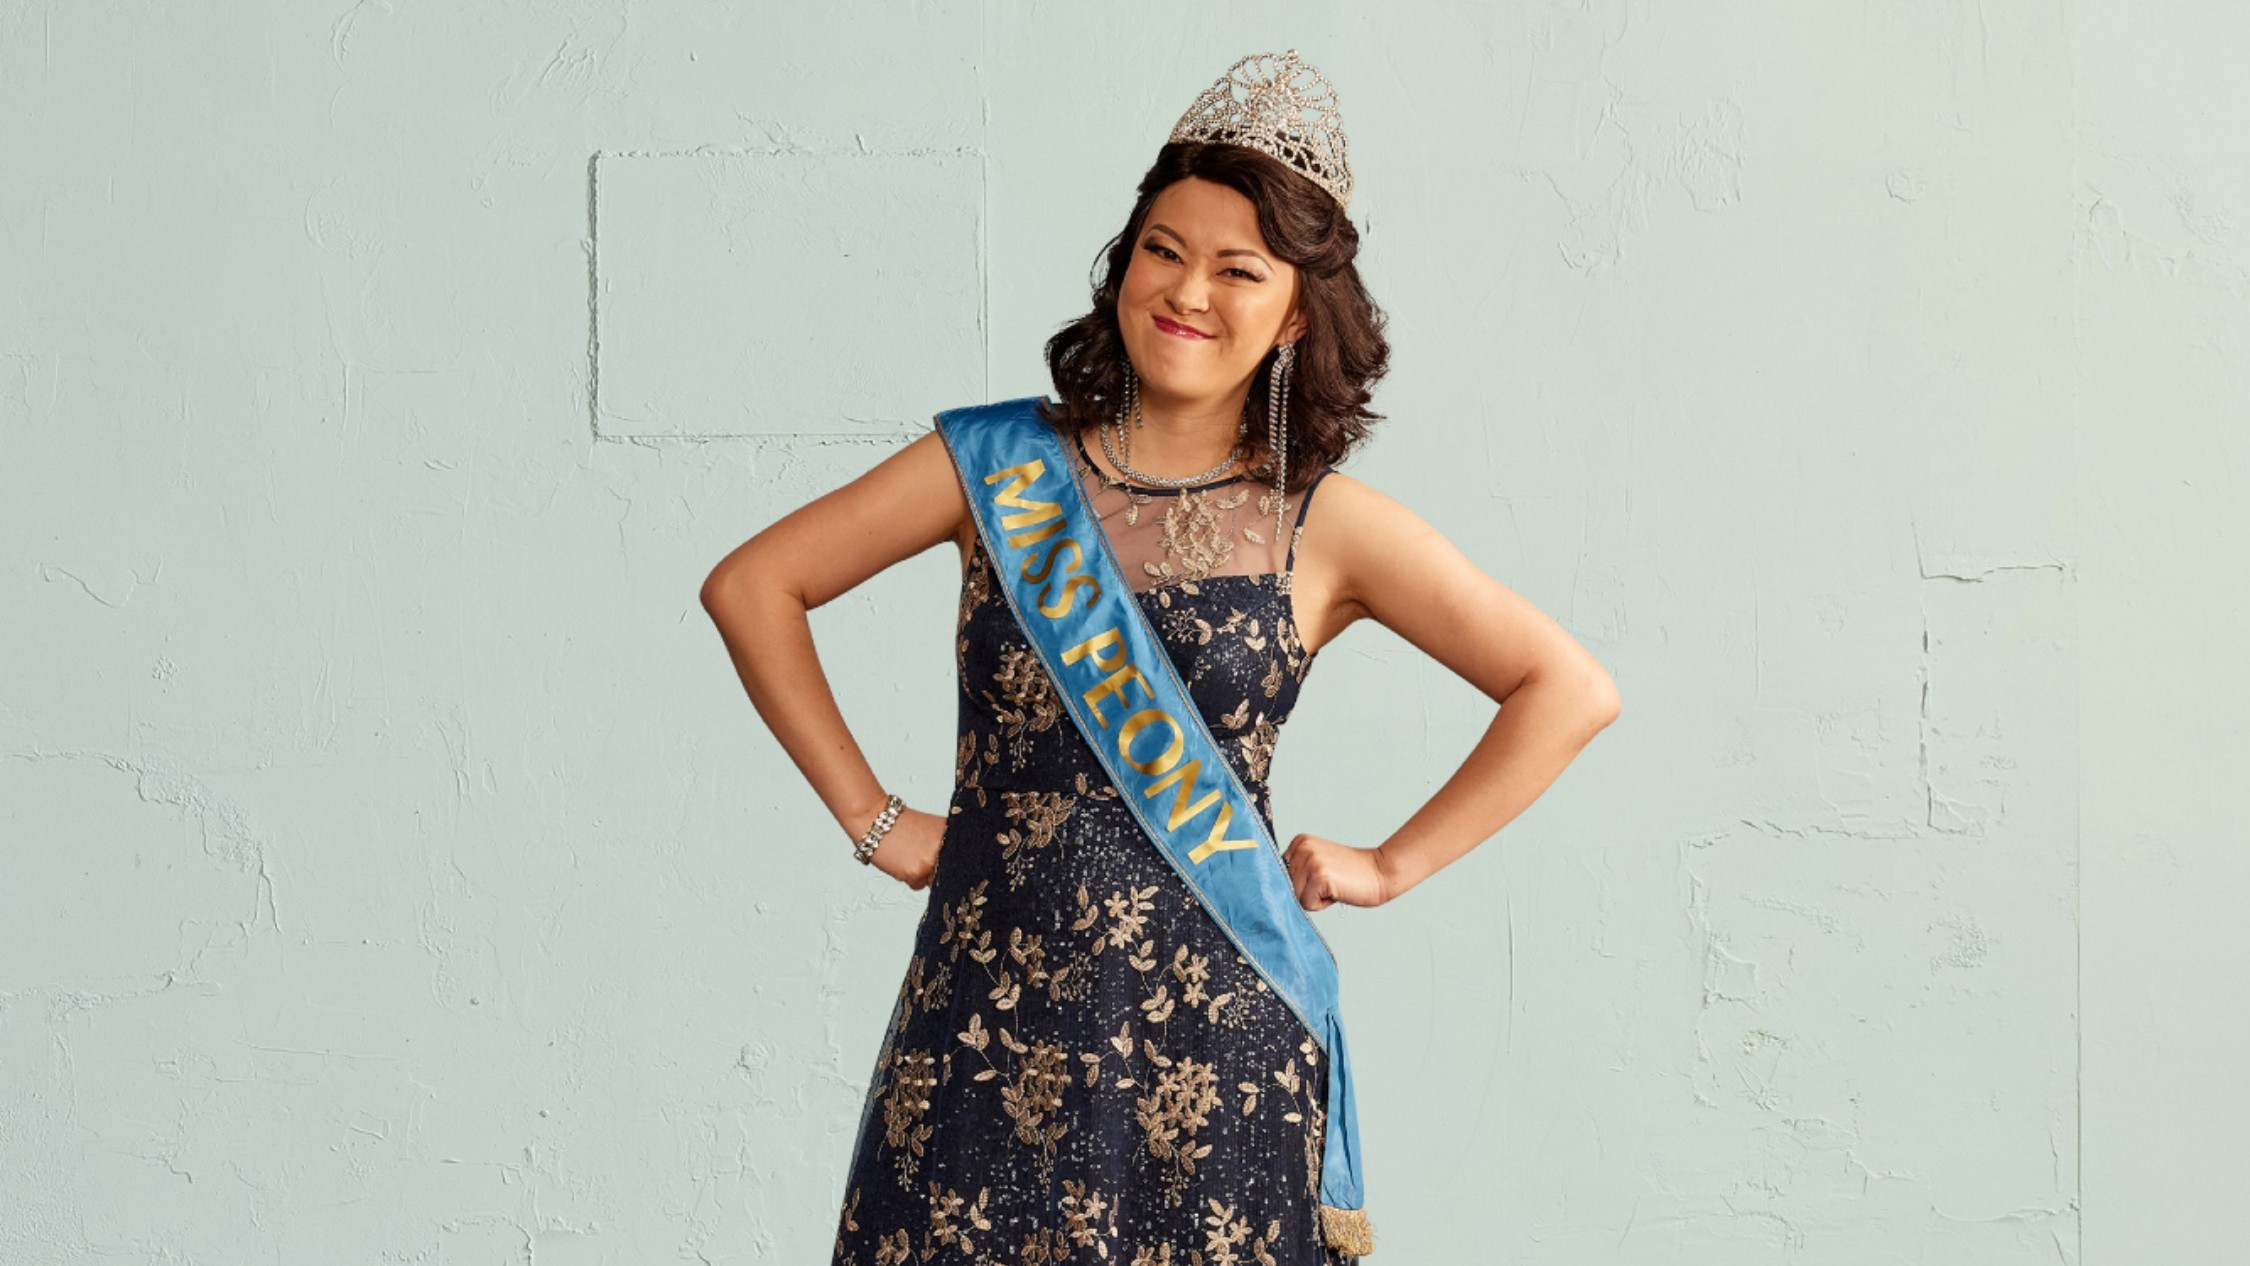 Michelle Law in blue winners sash, tiara and navy patterned dress in Miss Peony